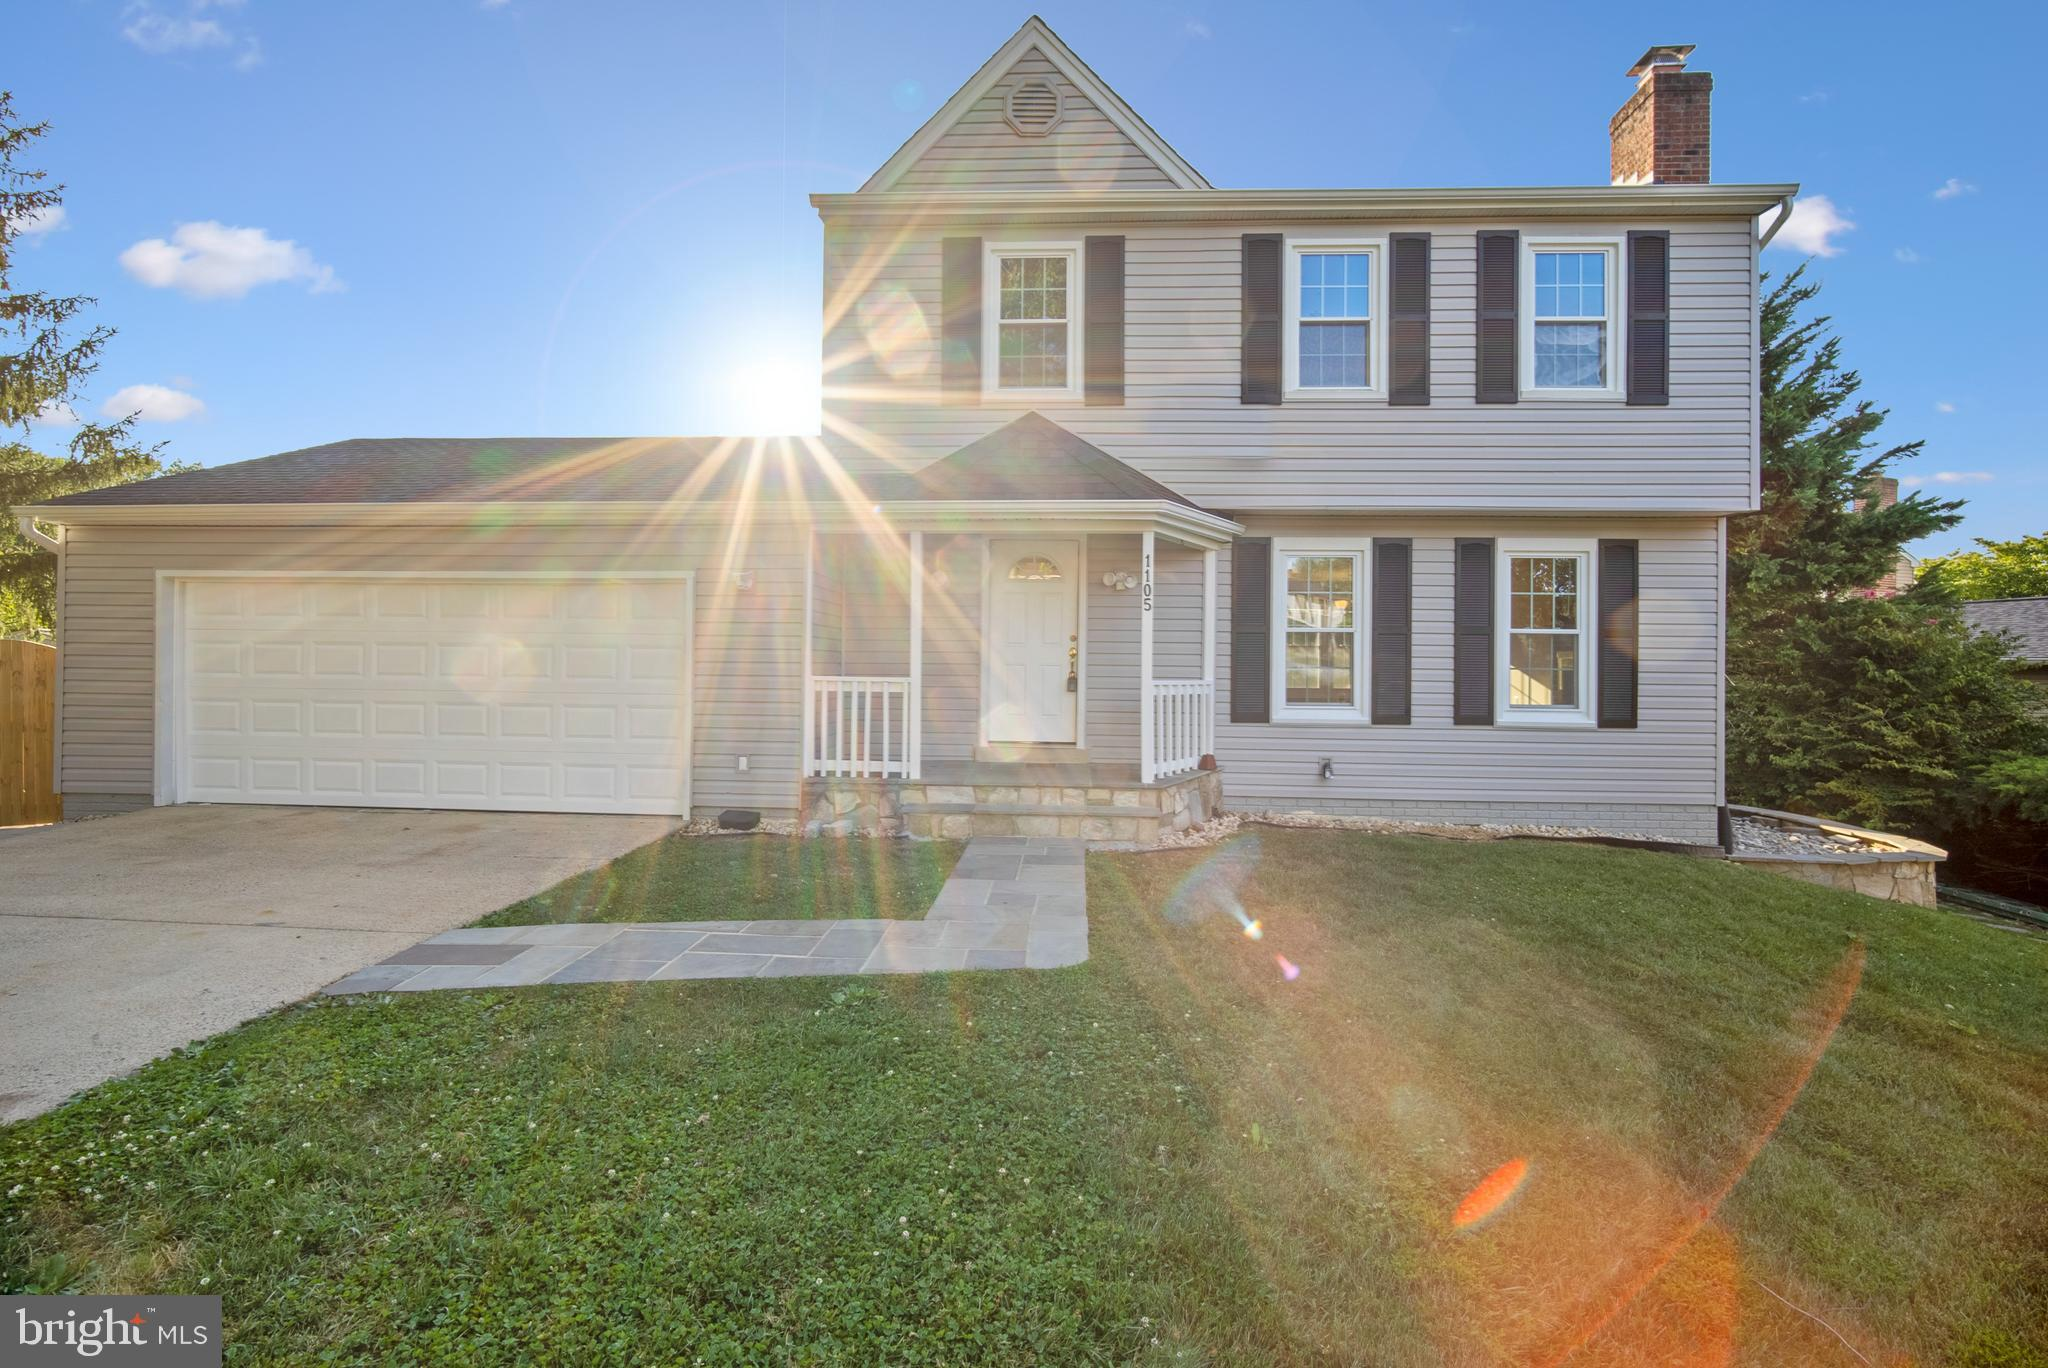 Beautiful 3 LEVELS house (3BR plus home office, 3FB, 1HB) built in 1984, with DOUBLE CAR GARAGE (NEW